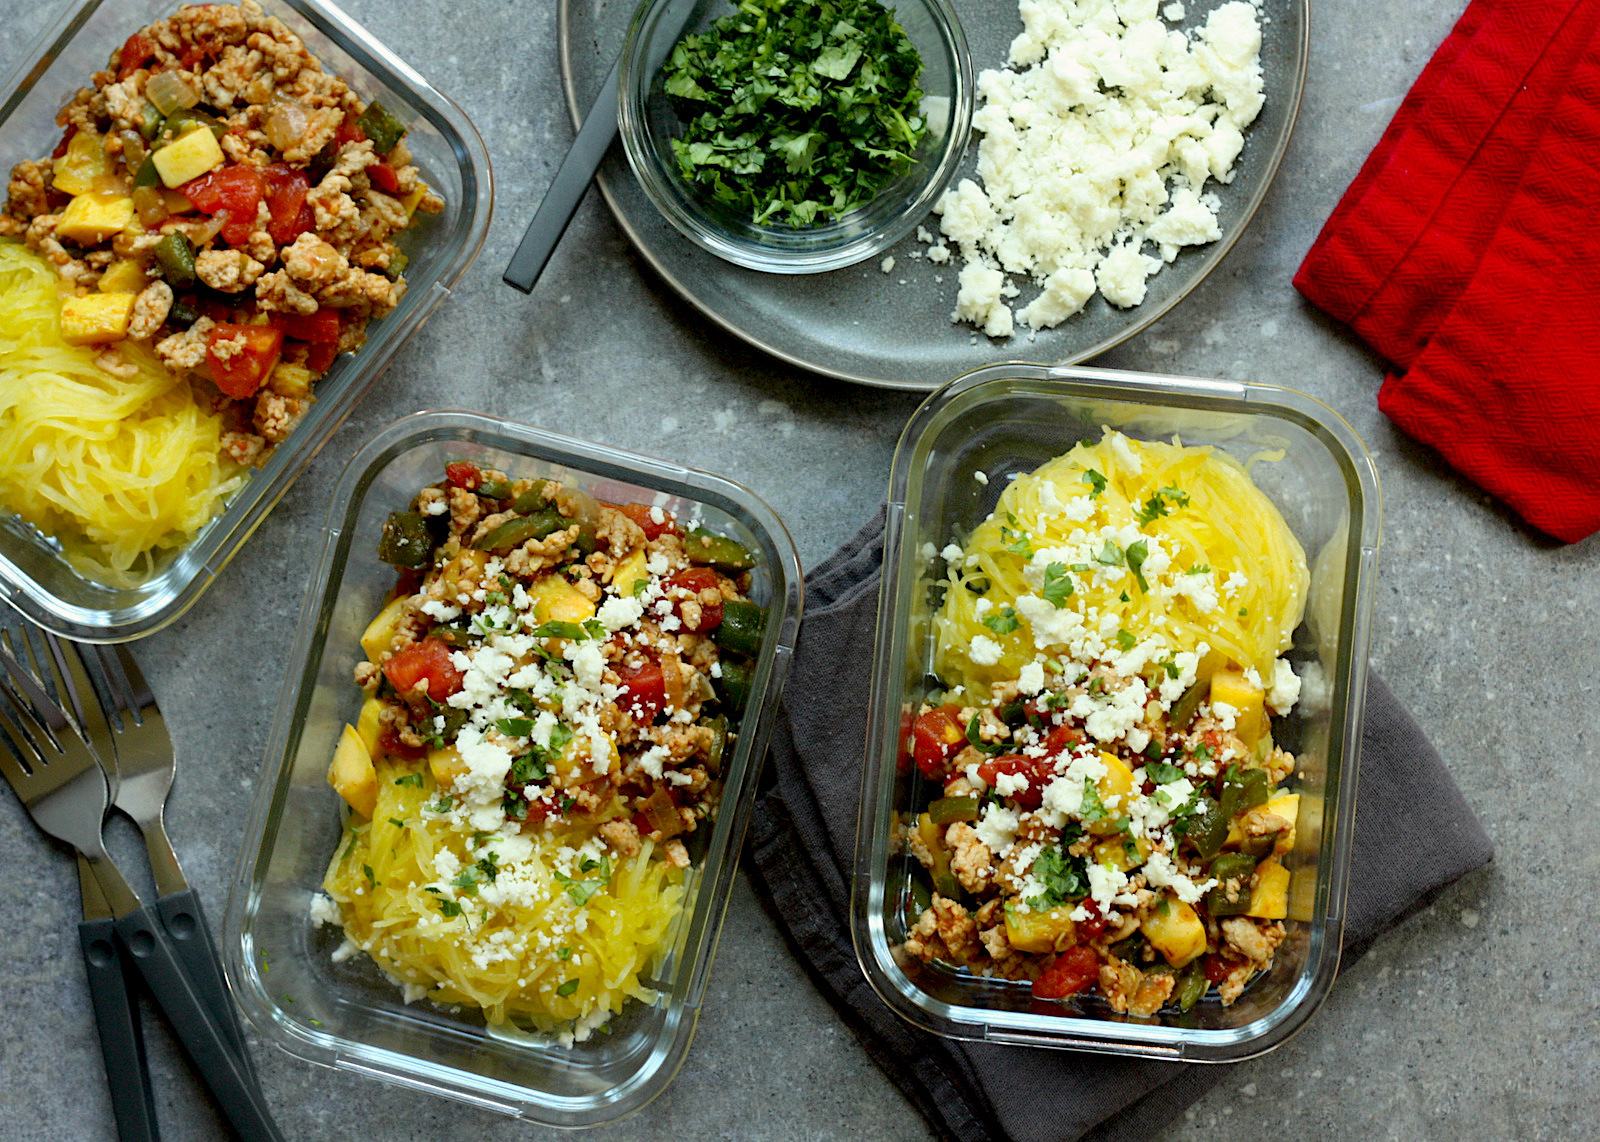 How to Meal-Prep for a Week of Heart-Healthy Lunches